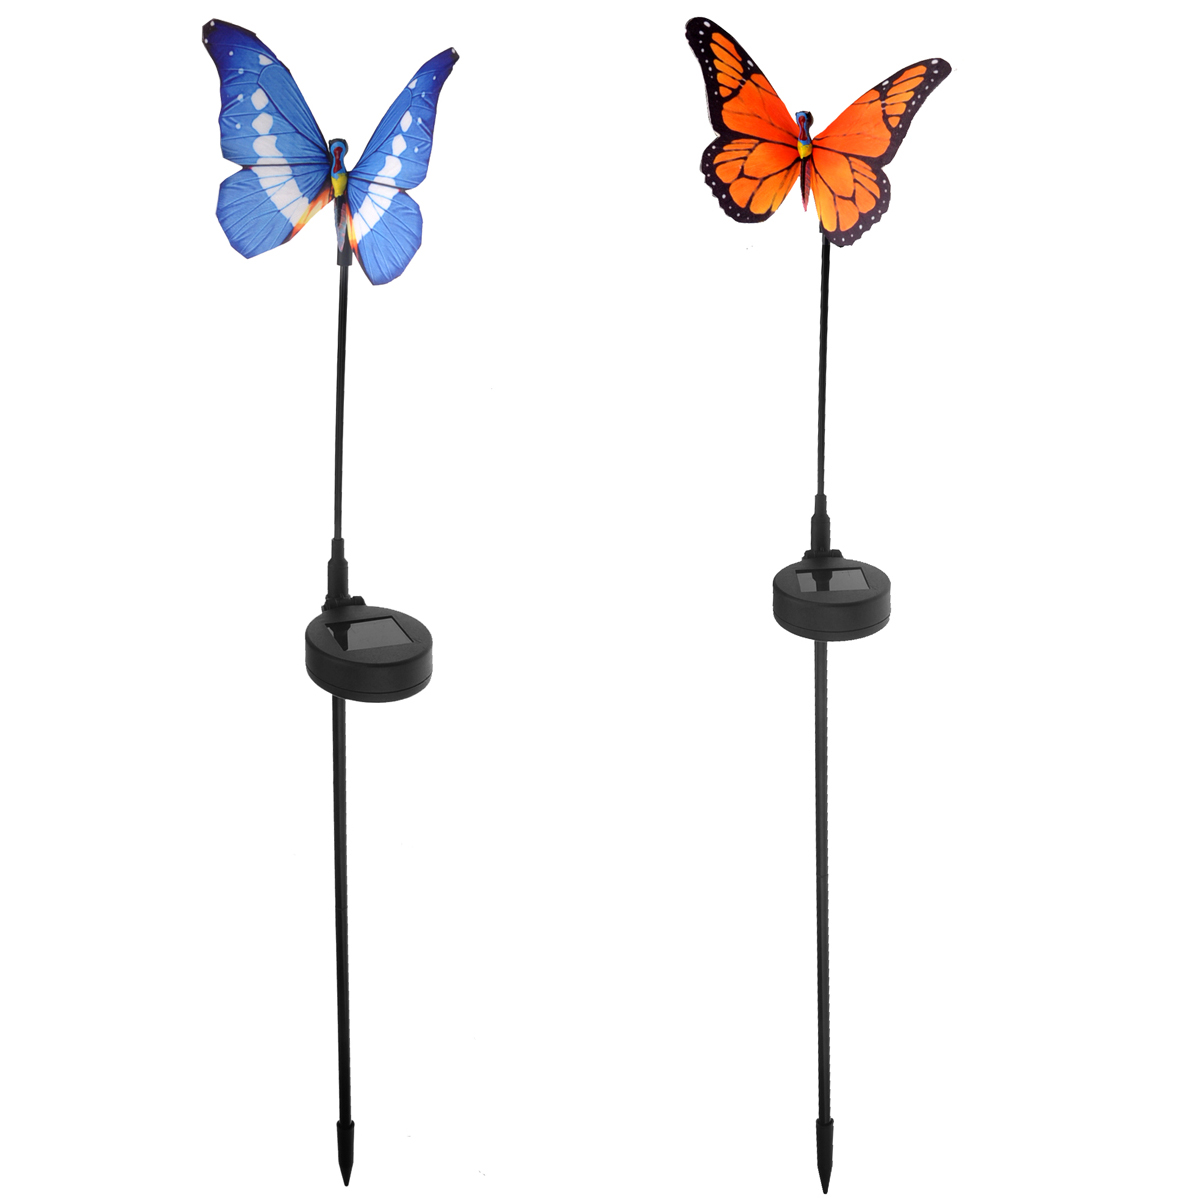 2pcs Waterproof Solar Power RGB Color-changing LED Fiber Optic Butterfly Lights LED Garden Lamps (Random Color)(China (Mainland))